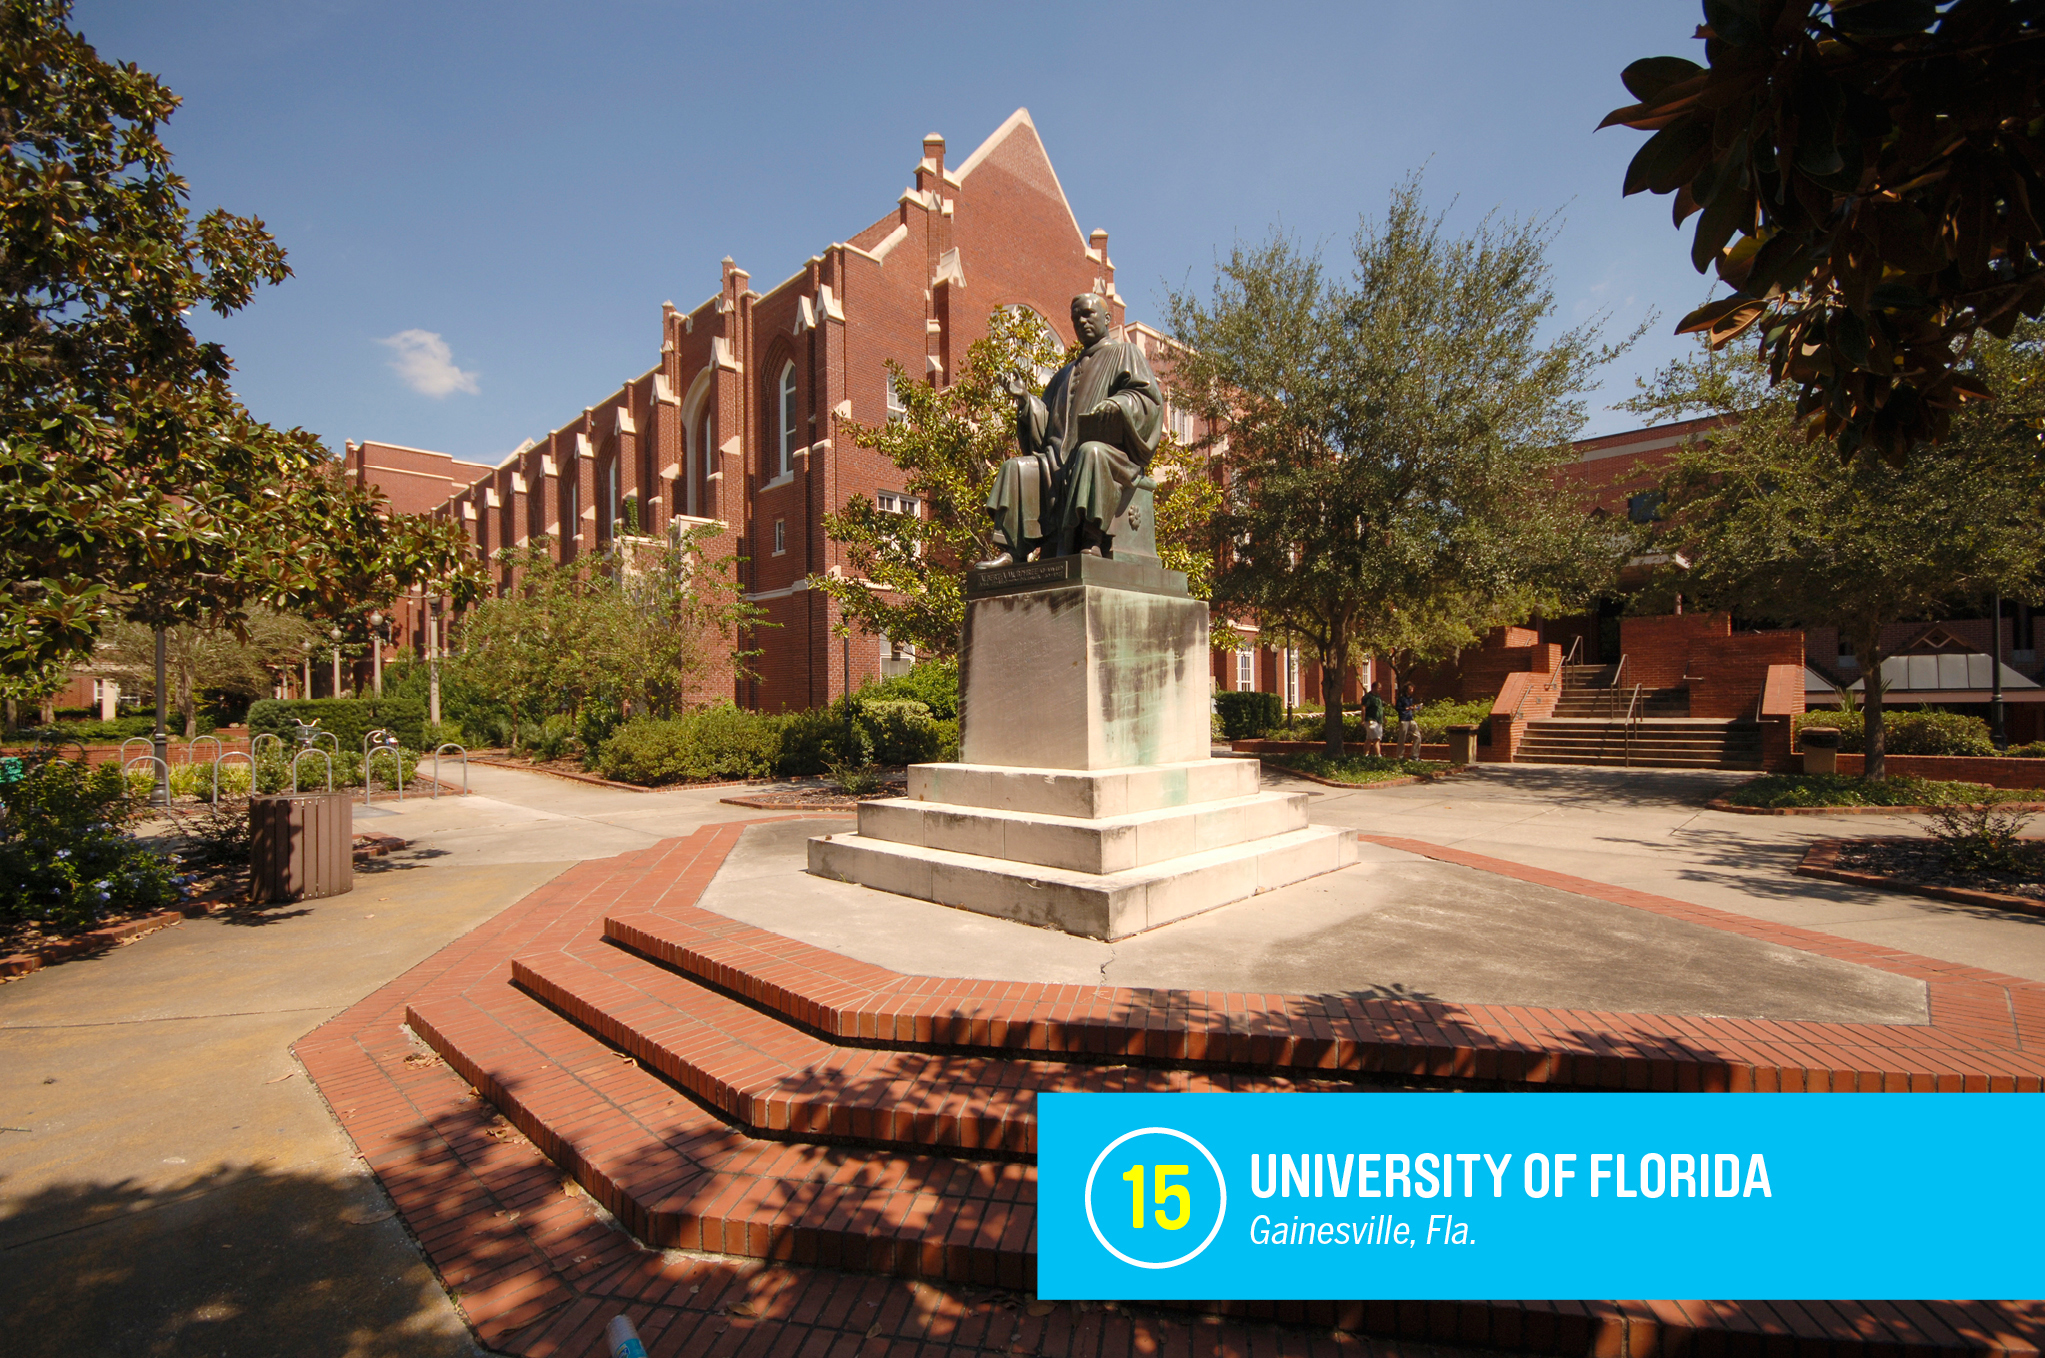 "The <a href=""https://money.com/best-colleges/profile/university-of-florida/"" target=""_blank"">University of Florida</a> is one of the biggest bargains in higher education, with tuition of just $6,300 a year for Floridians. For that low price, students get access to some of the world's top professors, well-respected programs in fields as diverse as astronomy and journalism, and sports teams that often dominate their leagues. <a href=""https://money.com/best-colleges/profile/university-of-florida/"" target=""_blank"">FULL PROFILE</a>"